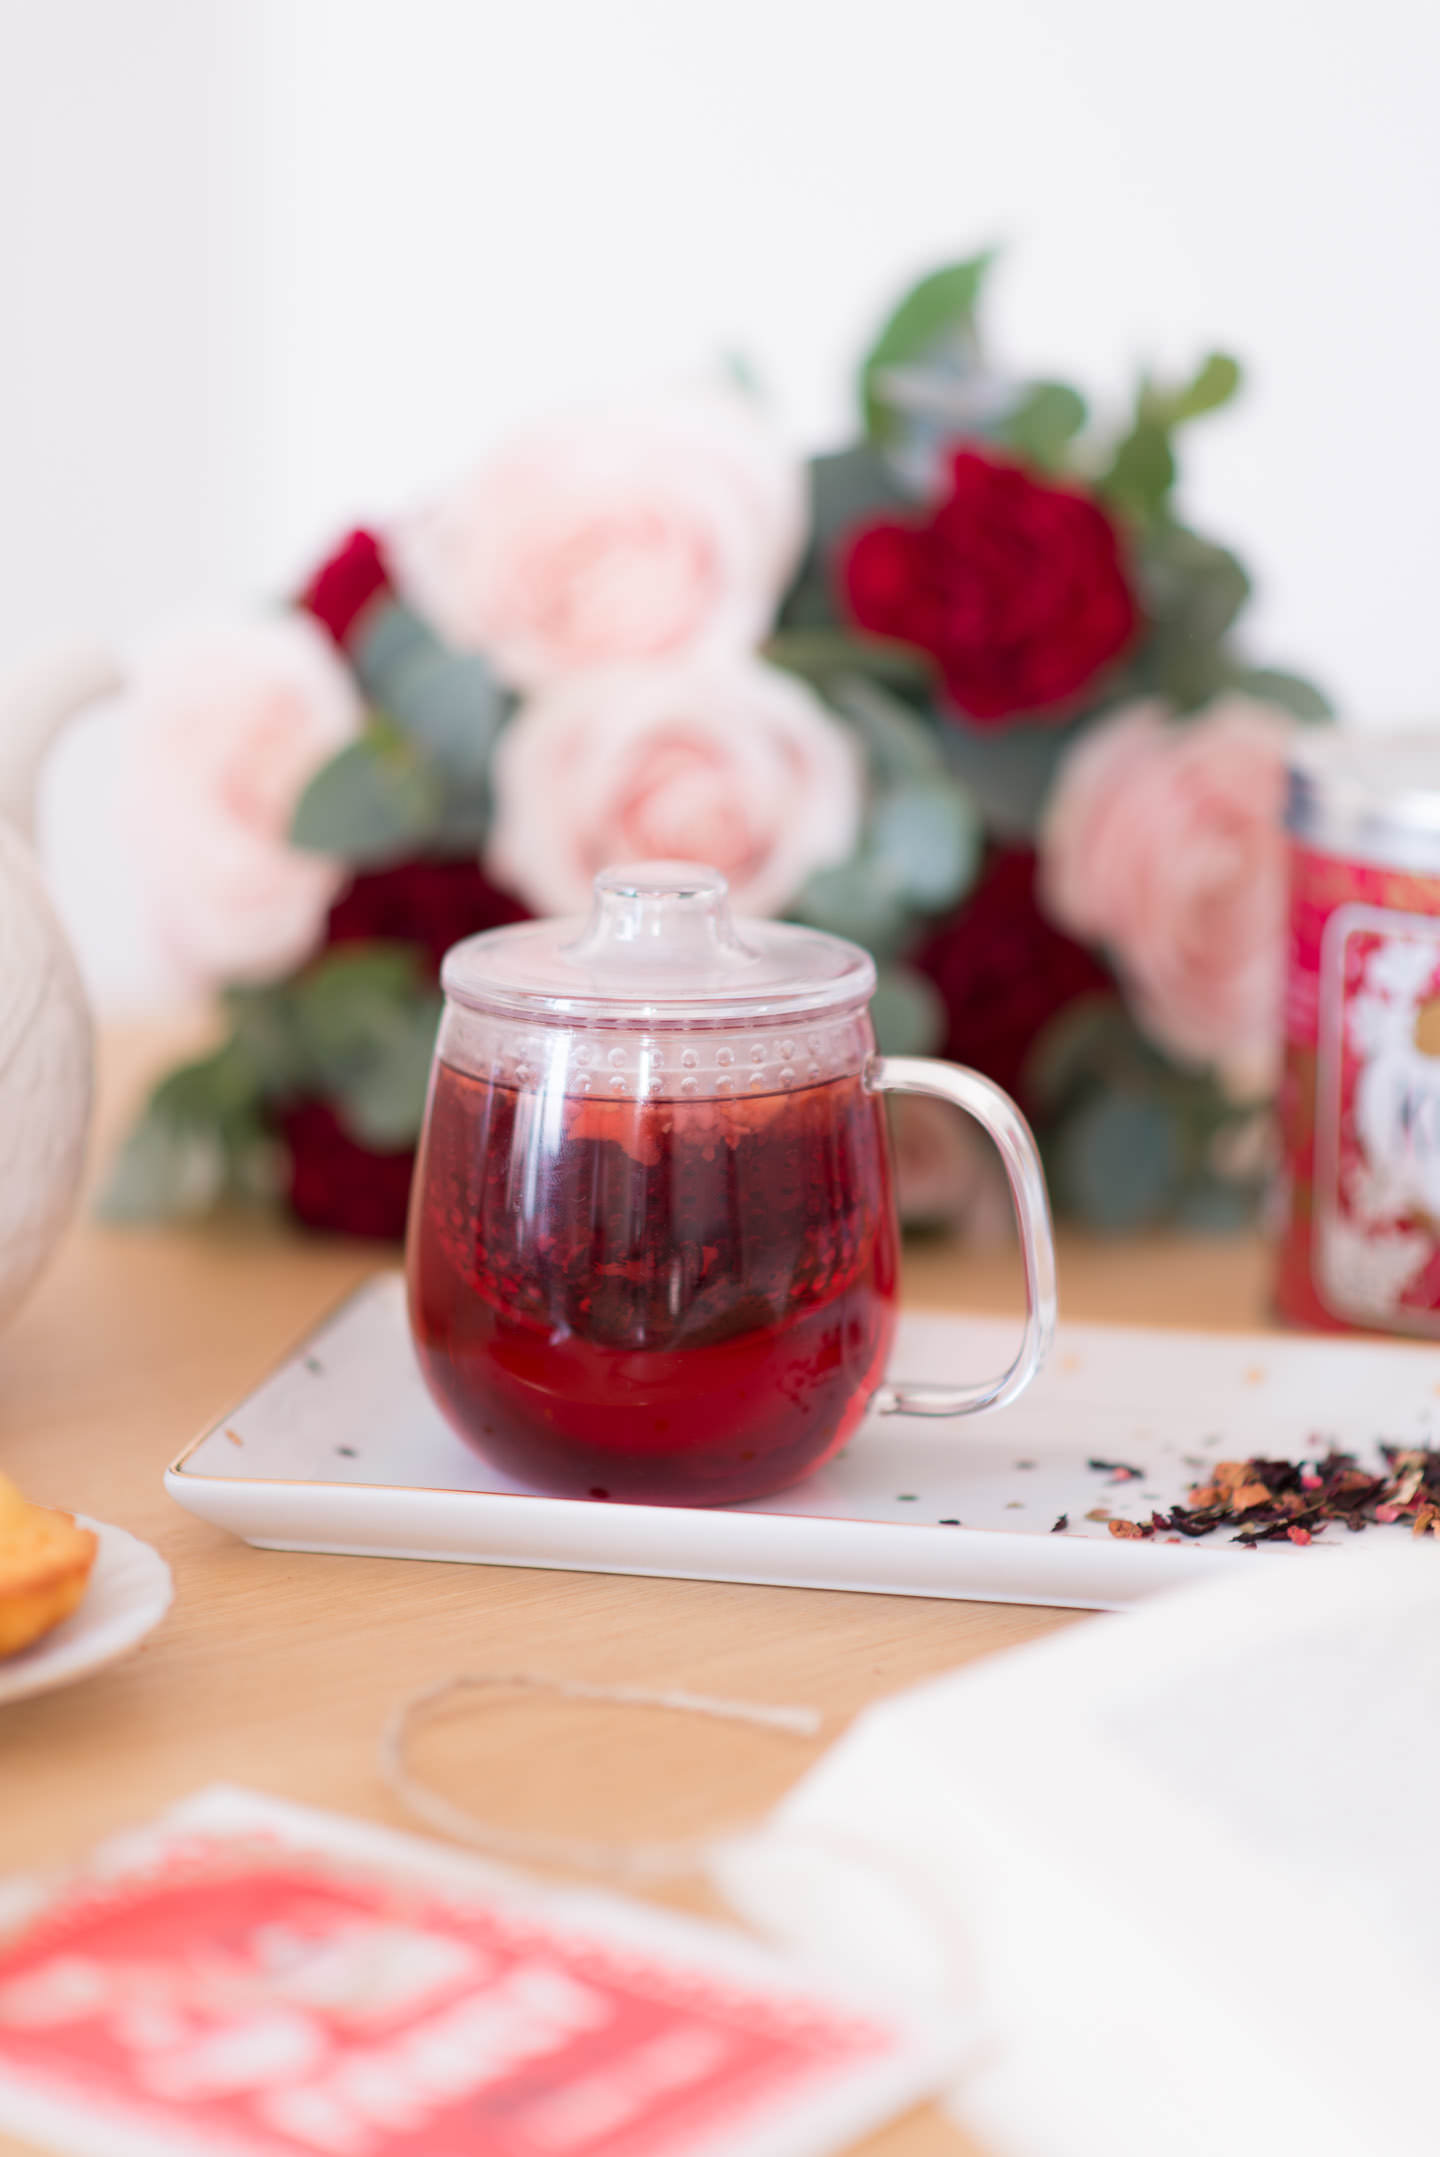 Blog-Mode-And-The-City-Aqua-Rosa-Kusmi-Tea-3